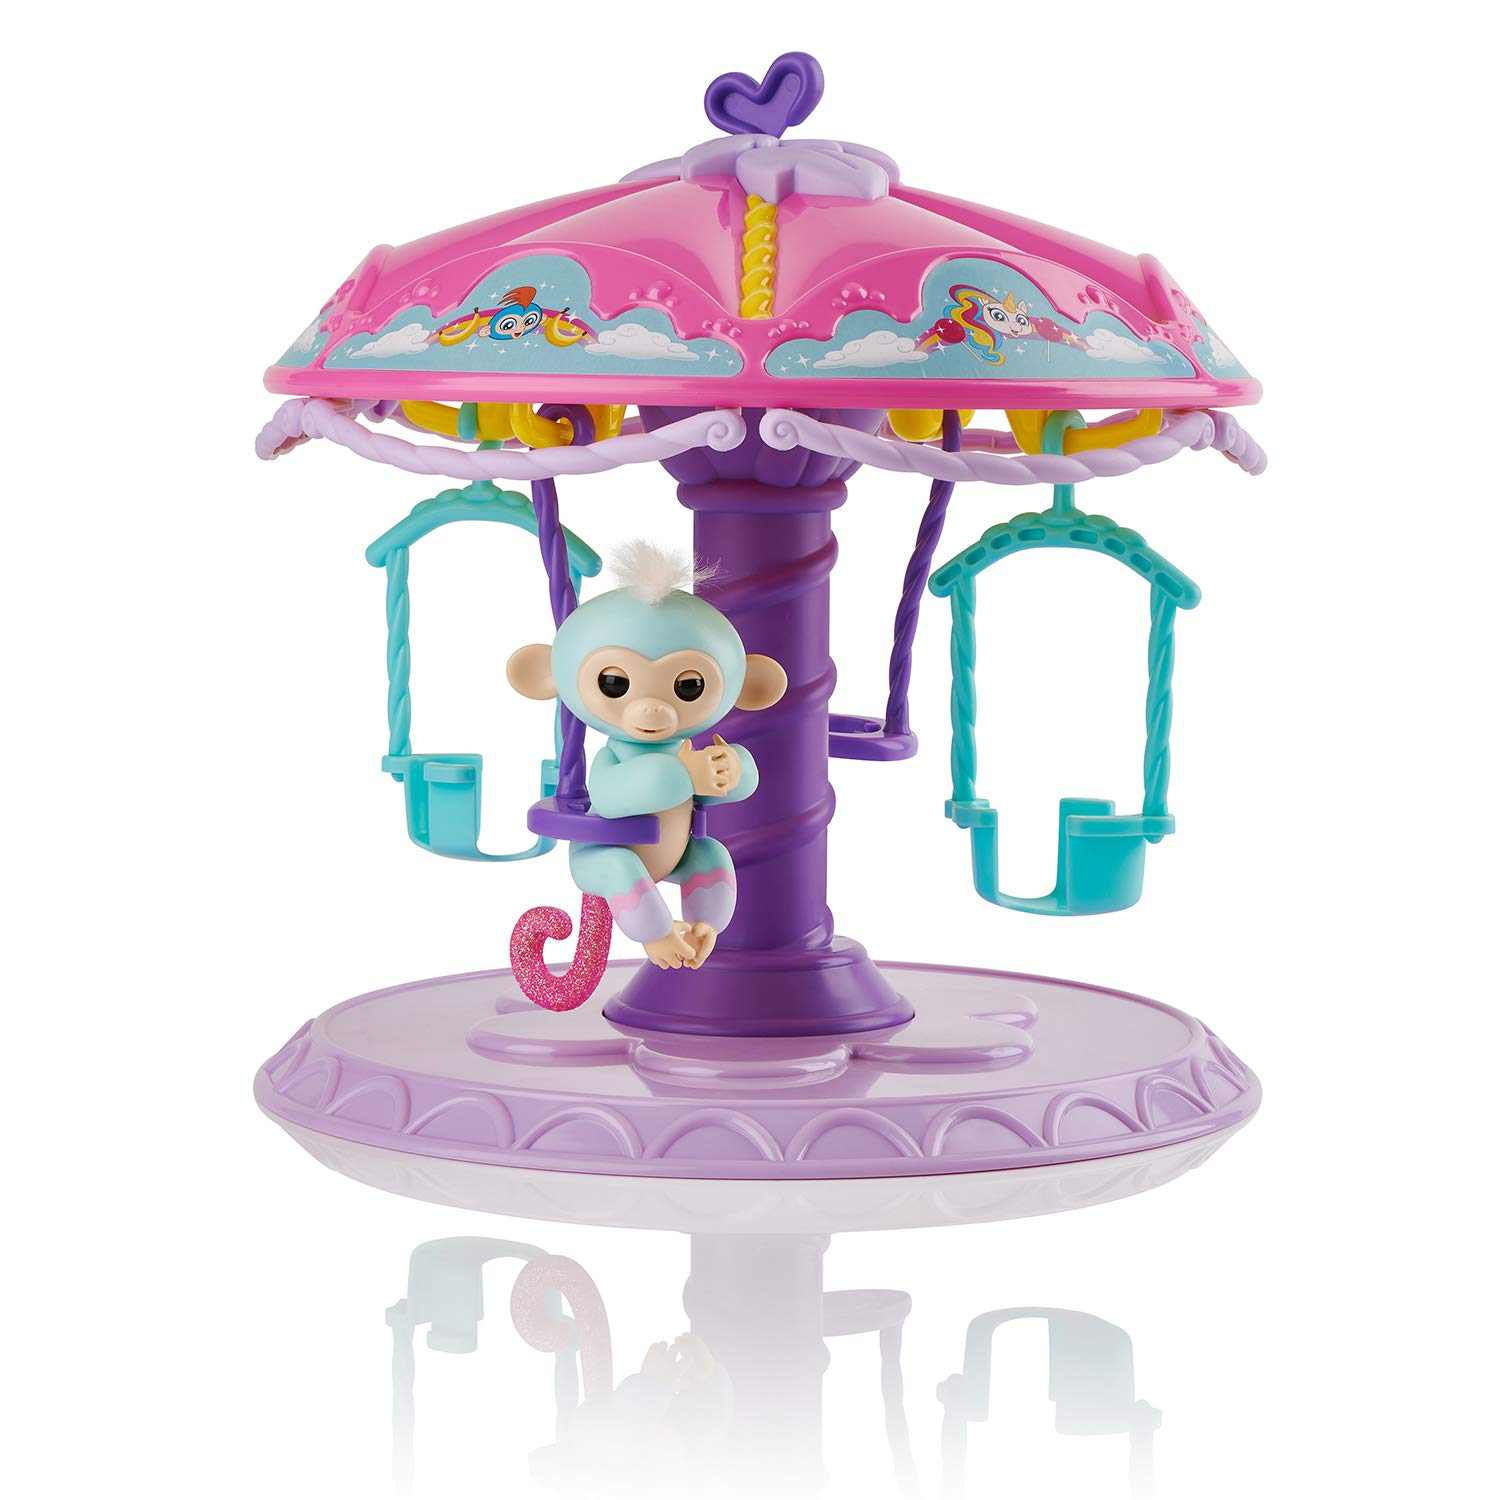 WowWee Fingerlings Playset: Twirl-A-Whirl Carousel with 1 Fingerlings Baby Monkey - Abigail (Light Blue with Pink Glitter) 3736